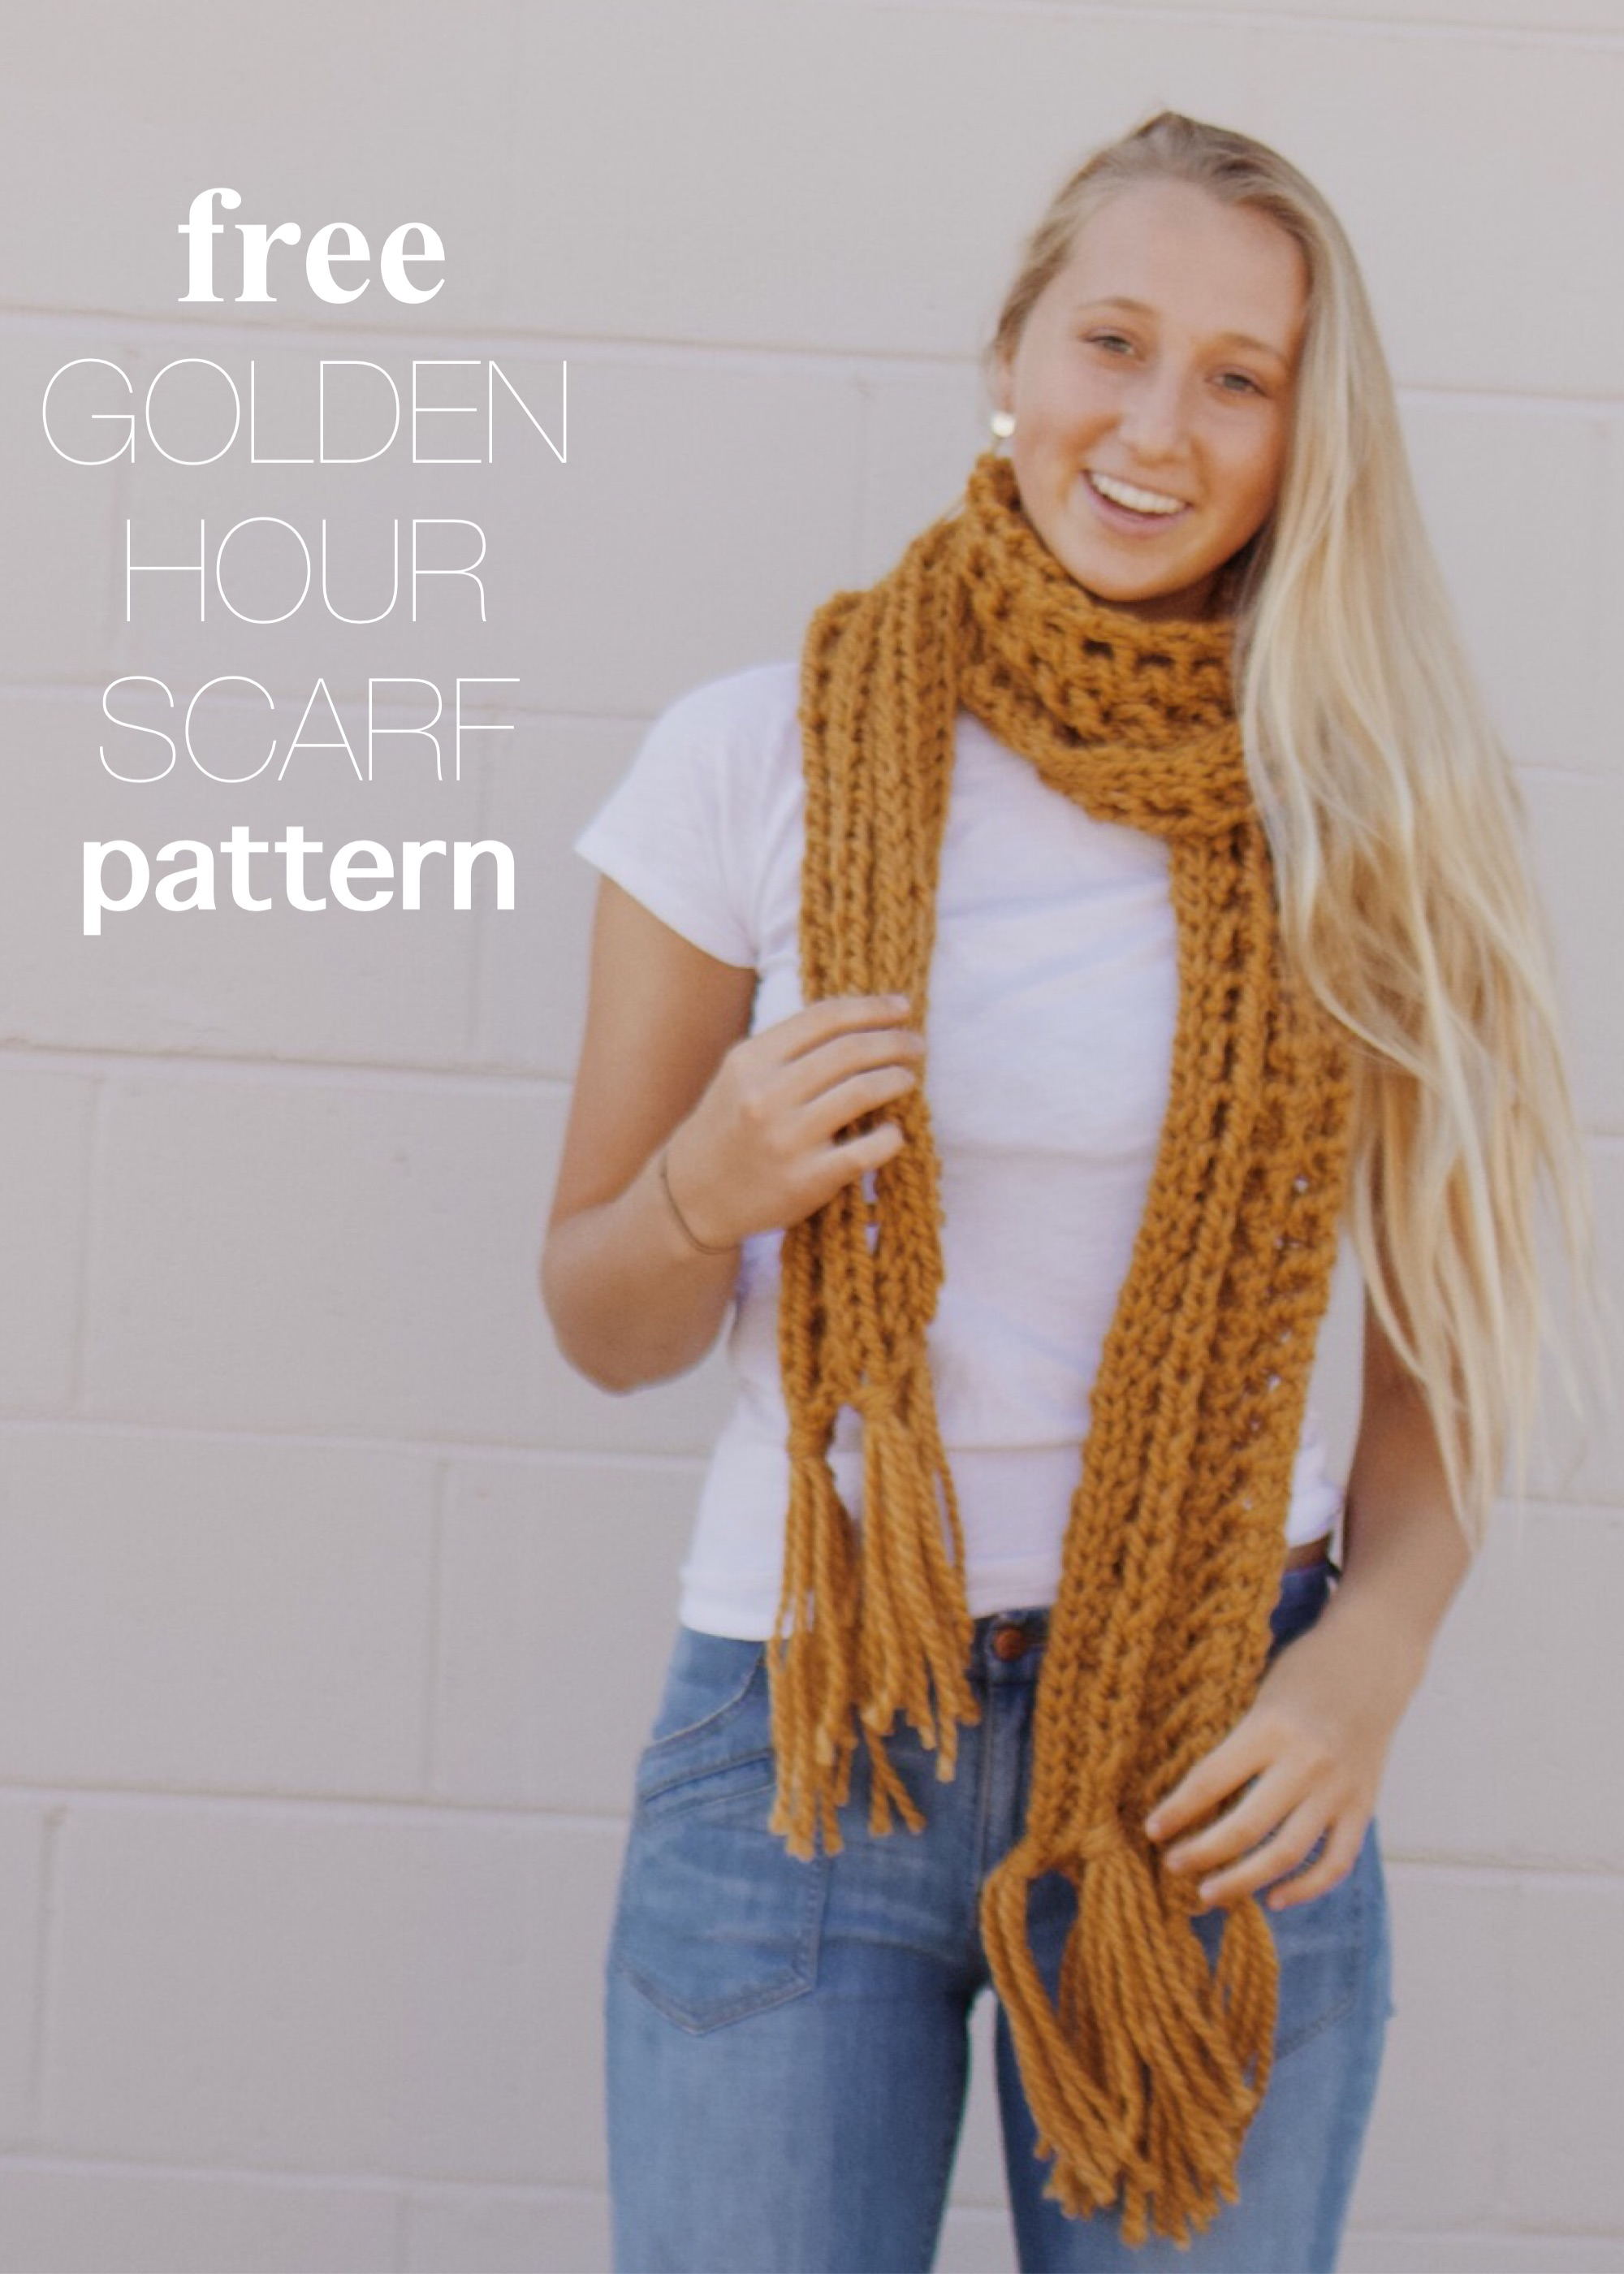 Free knit scarf pattern by Bluecorduroy.com